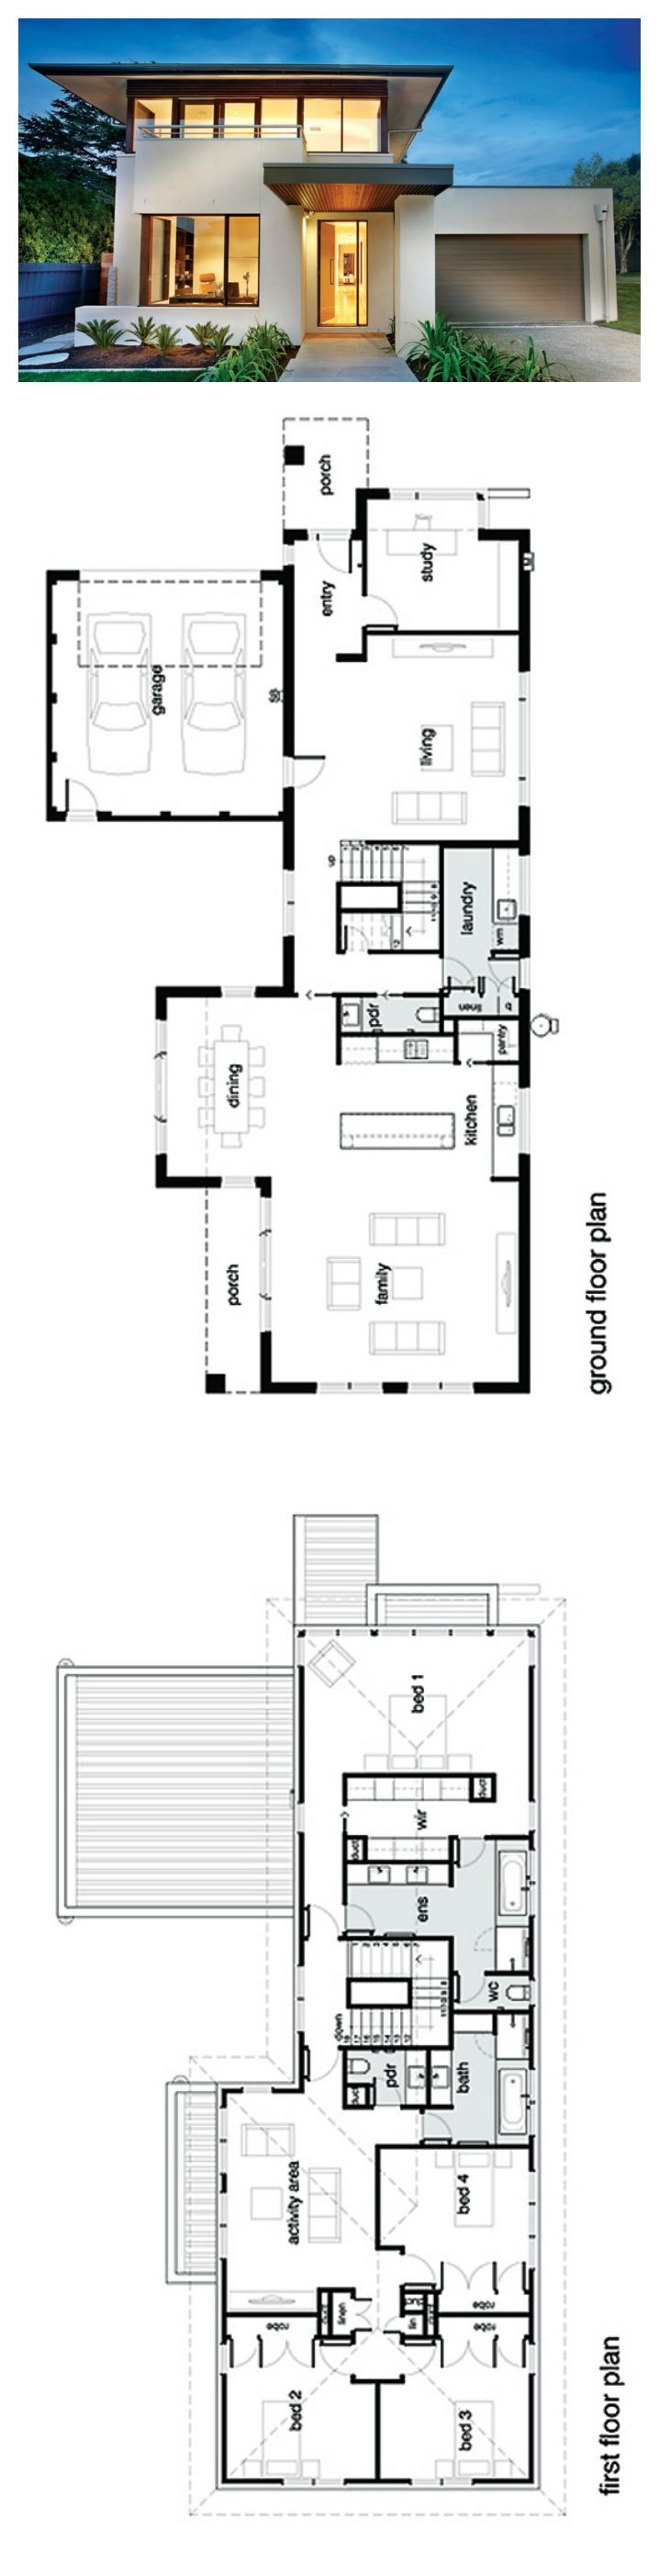 Best 25 modern house plans ideas on pinterest for Contemporary home plans